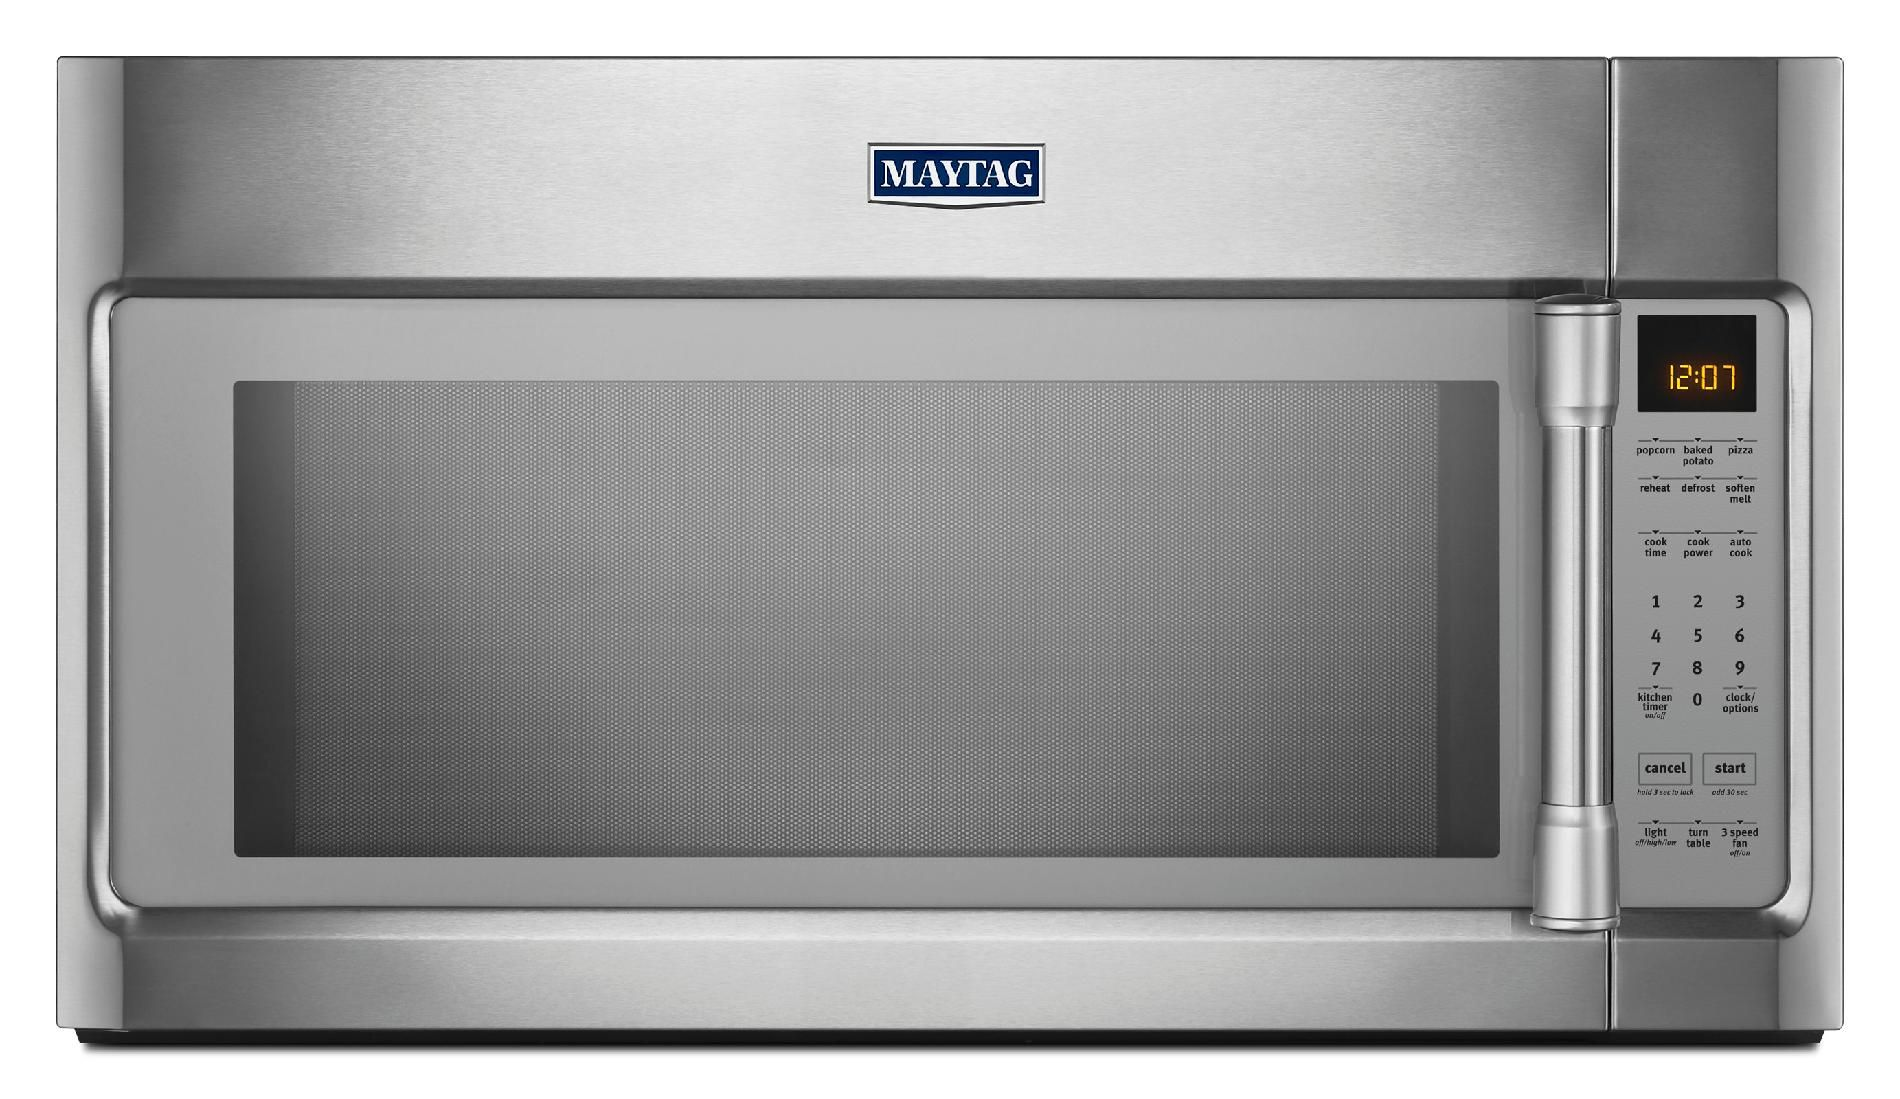 Maytag microwave hood combination MMV4205D | Tiny House Stuff ...